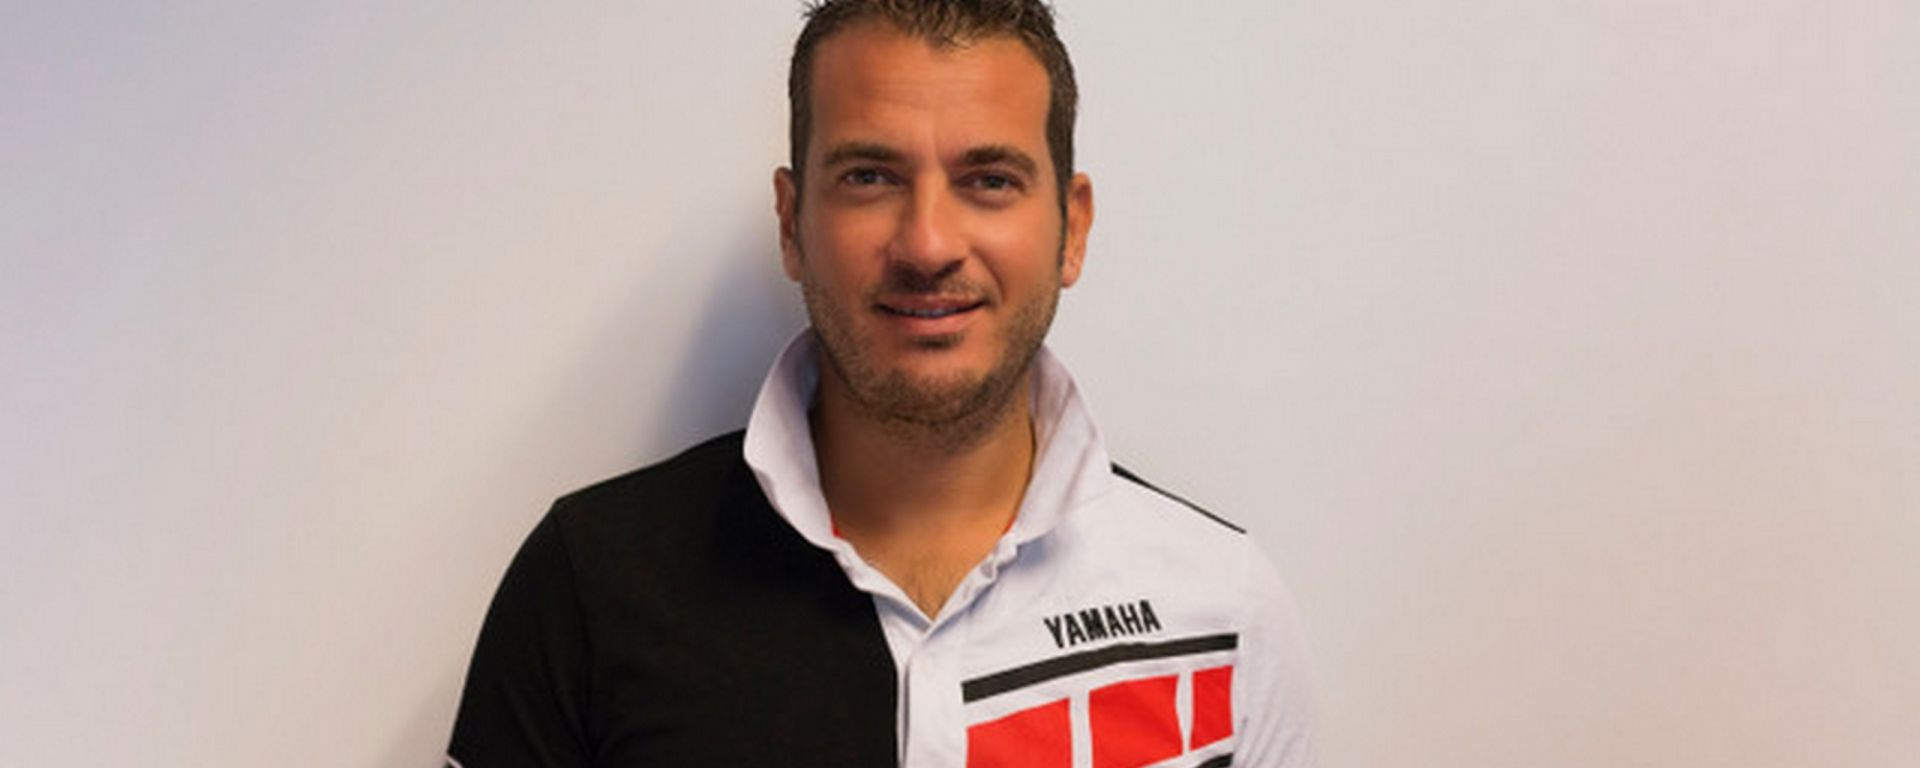 Andrea Colombi, Country Manager di Yamaha Motor Europe per l'Italia